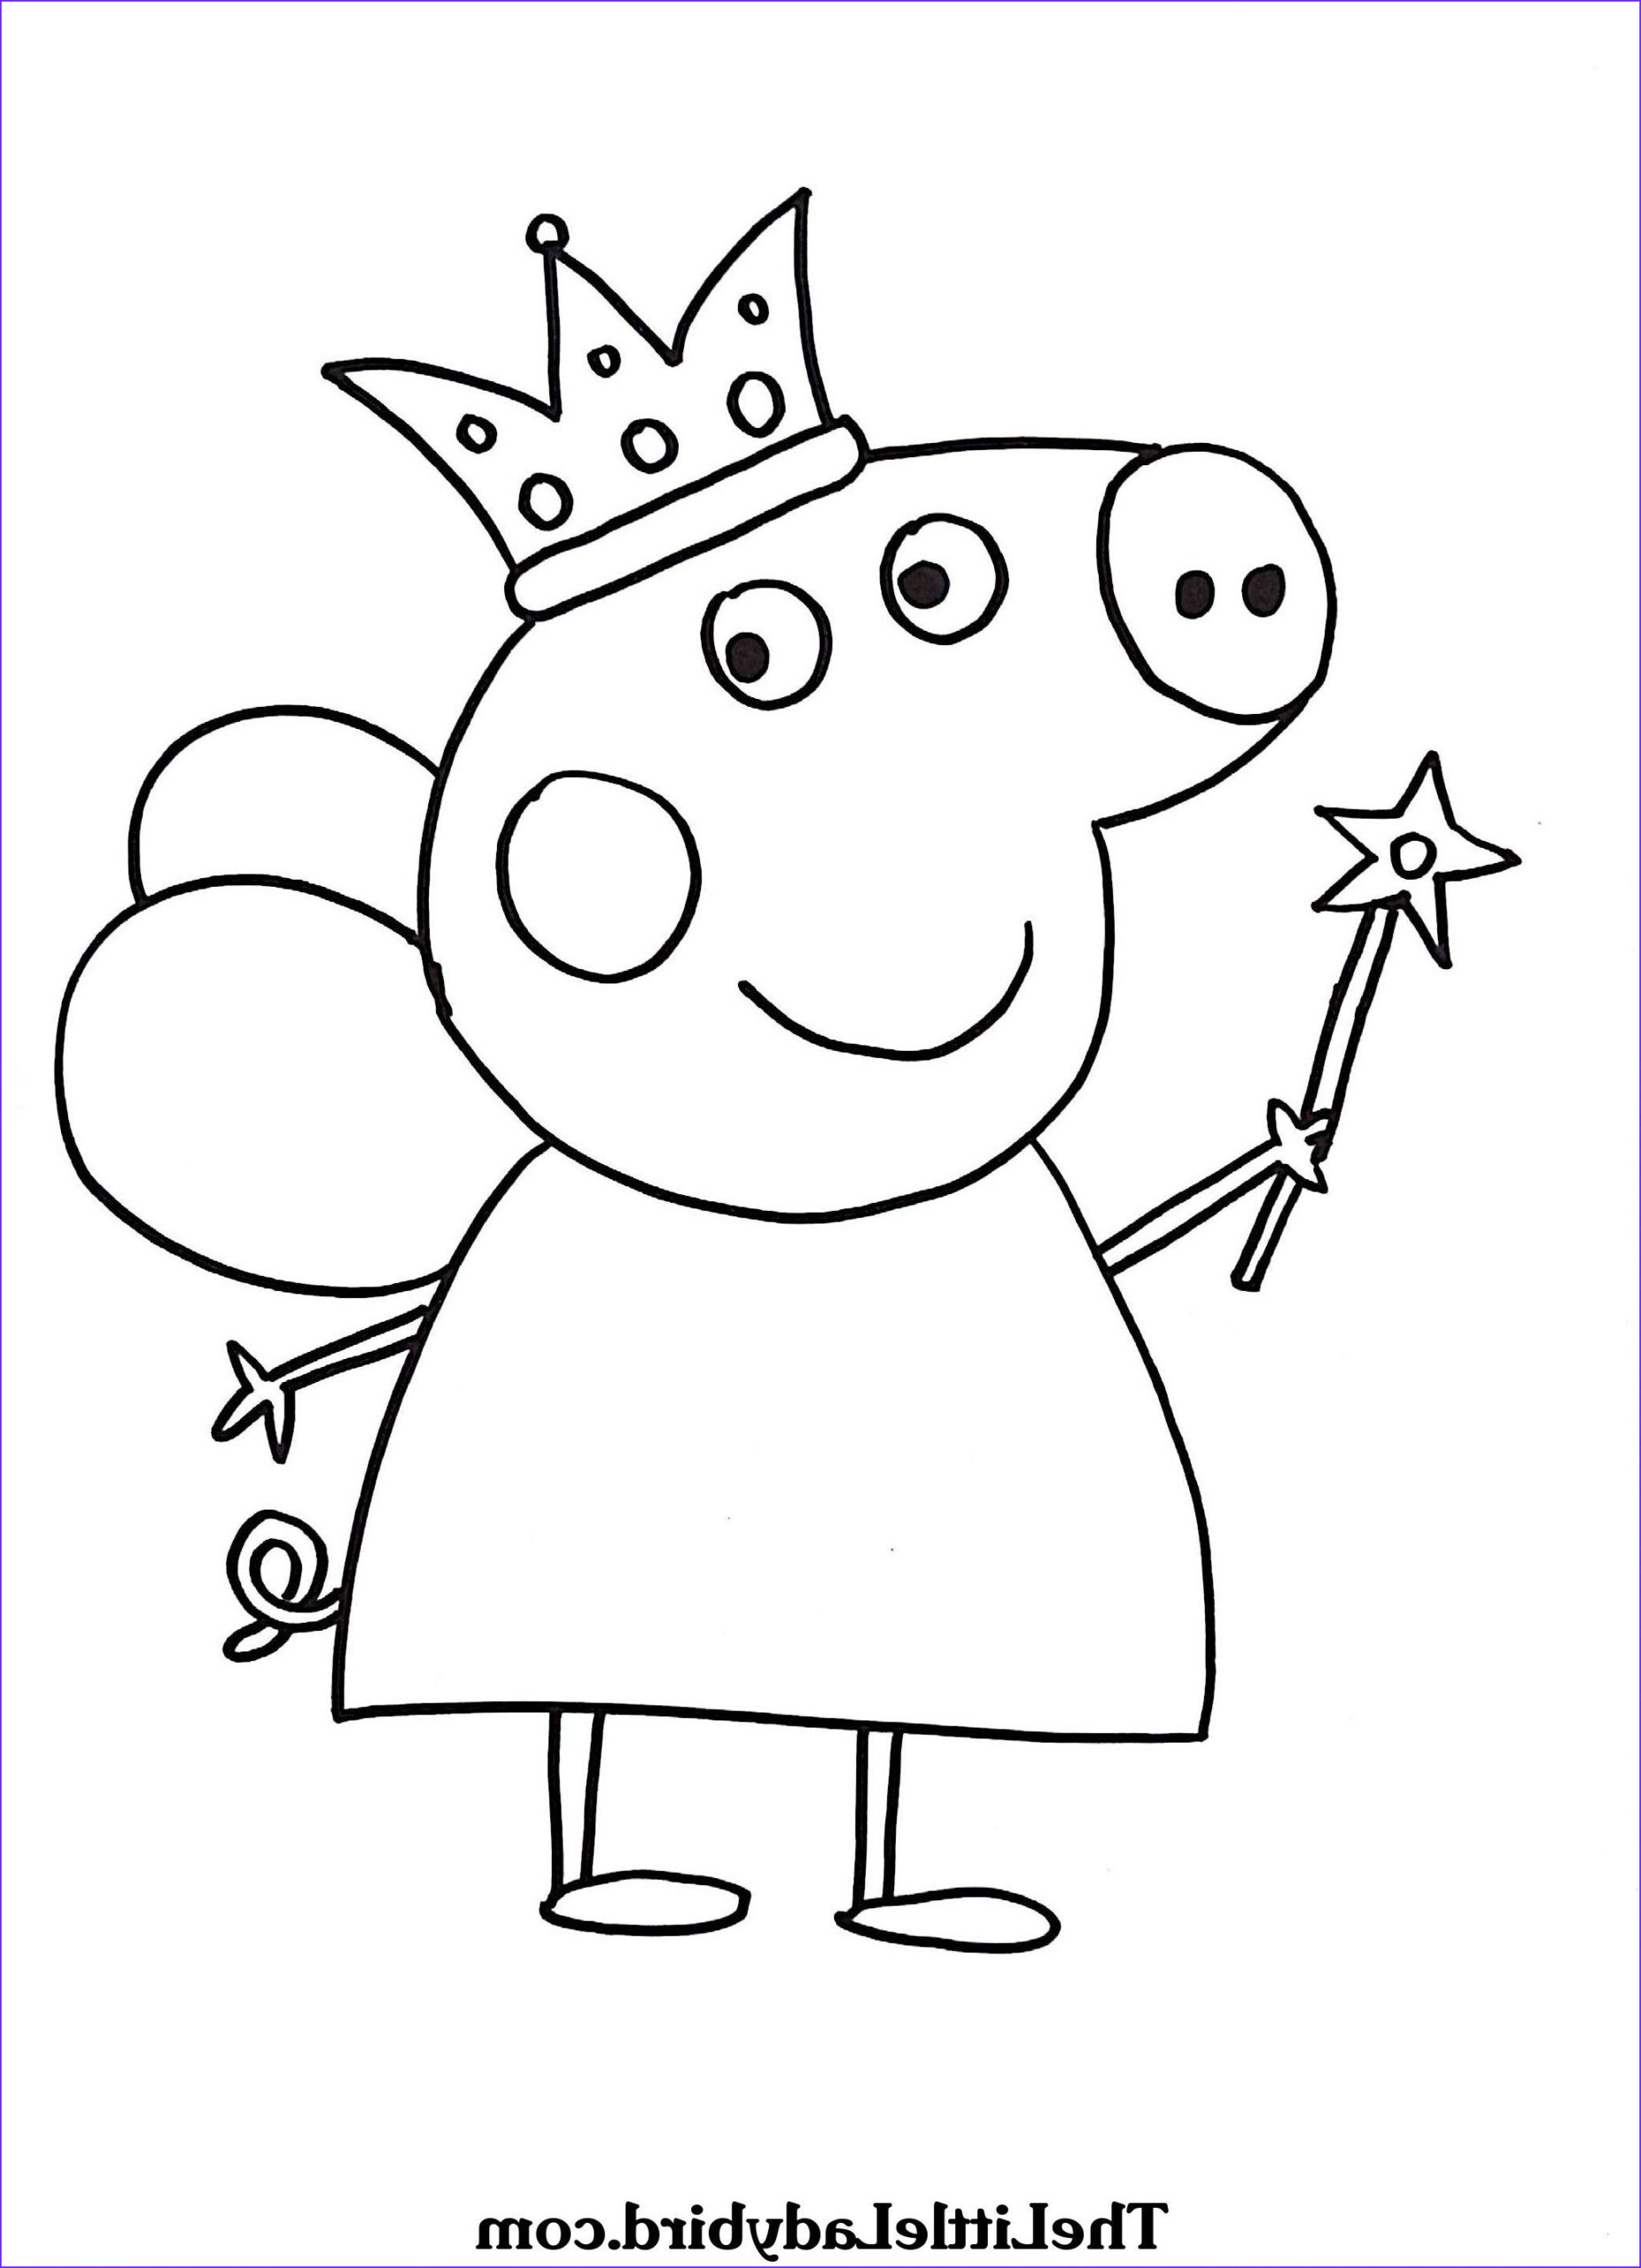 Coloring Pages Peppa Pig Awesome Images Peppa Pig Valentines Coloring Pages – From the Thousand